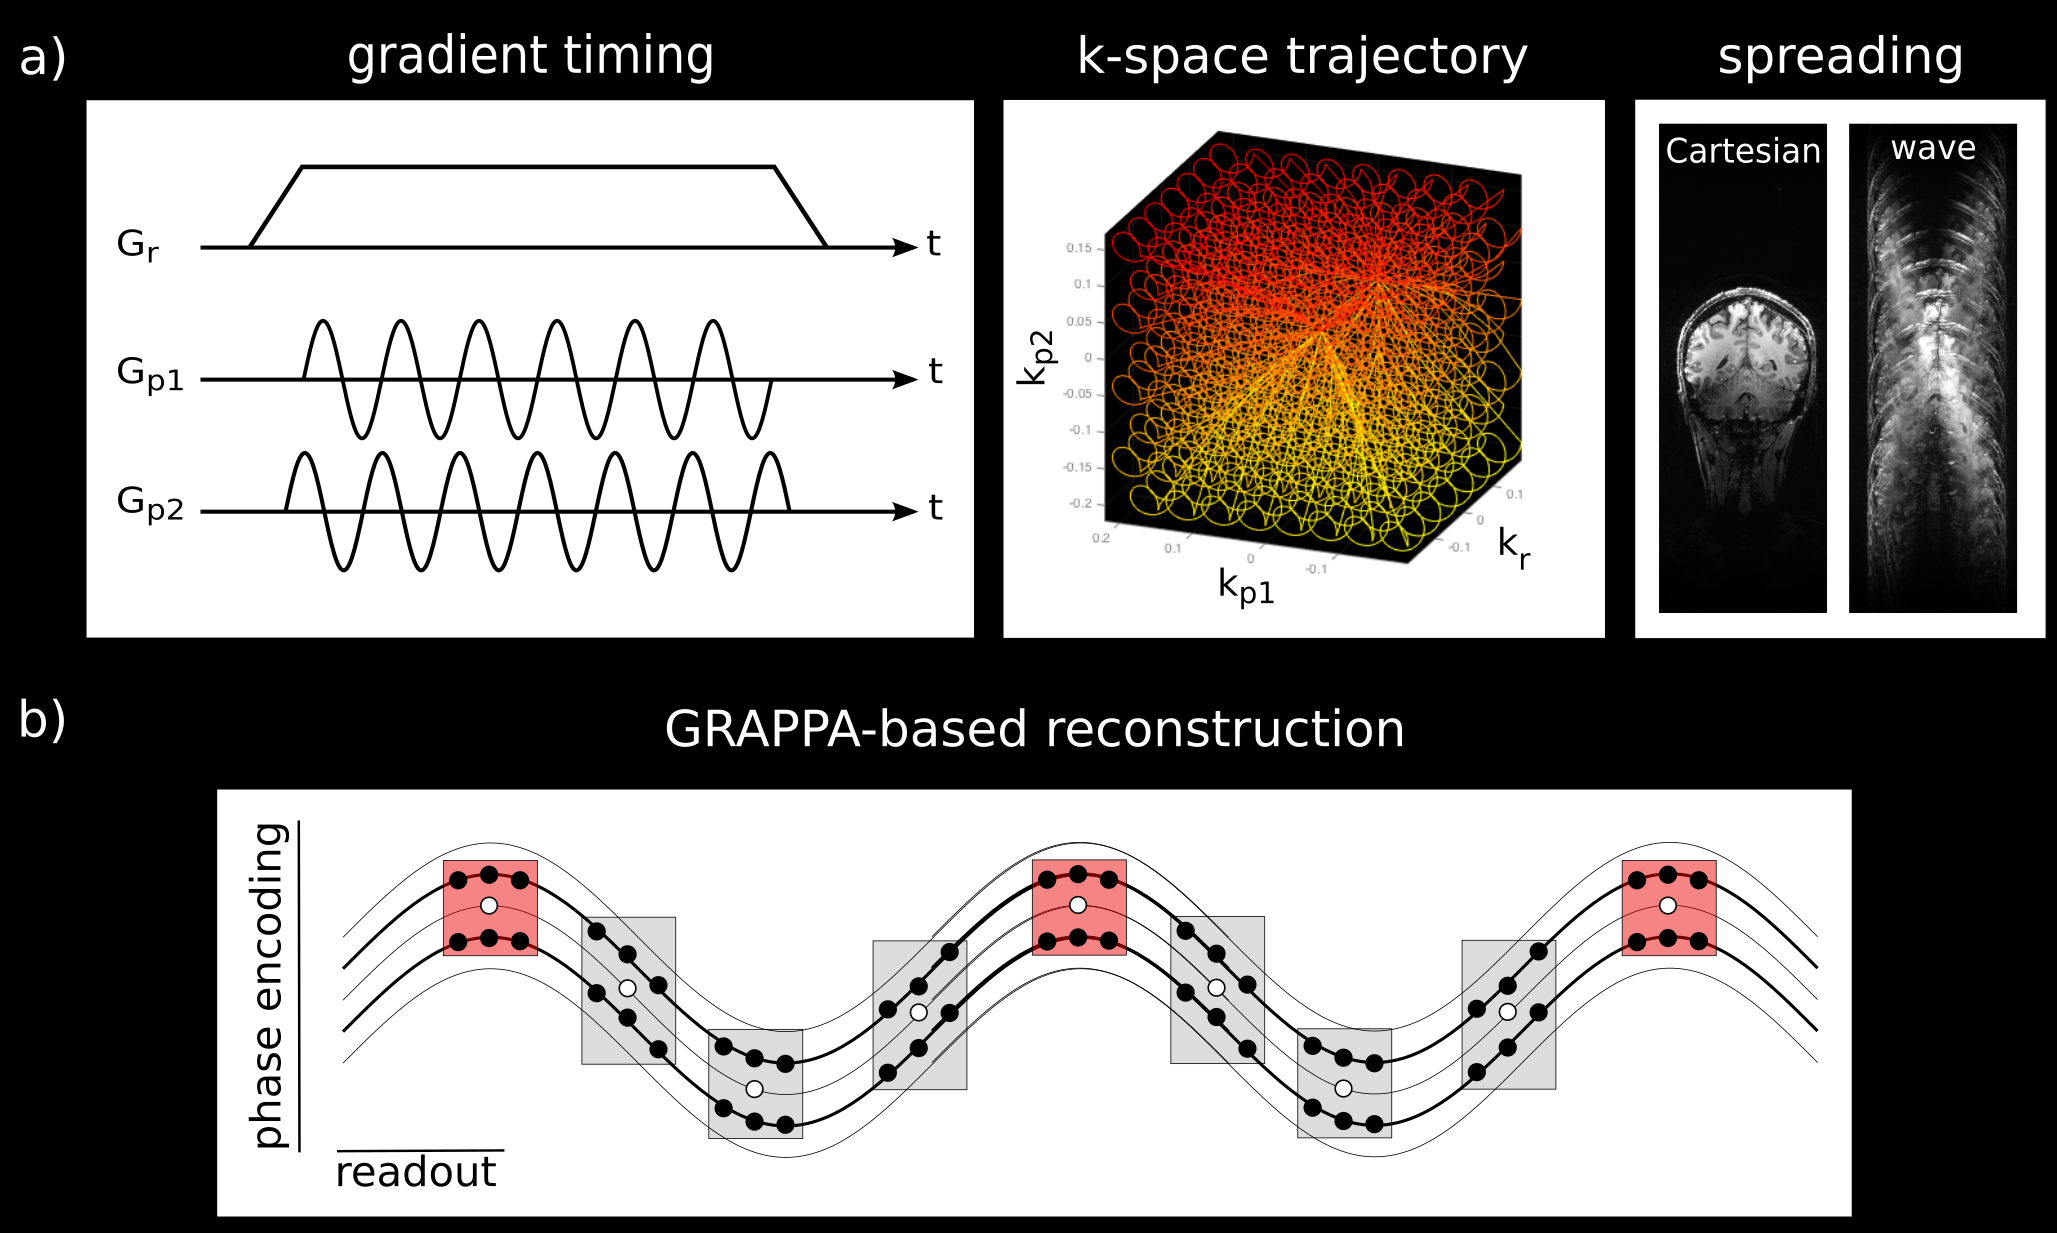 a) Schematic description of an acquisition with wave sampling. Oscillating phase encoding gradients during the readout process (left) result in corkscrew k-space trajectories (middle) and wave spreading in the readout direction of the image (right). b) For the GRAPPA-based wave-CAIPI reconstruction, multiple reconstruction kernels are required along the readout direction.